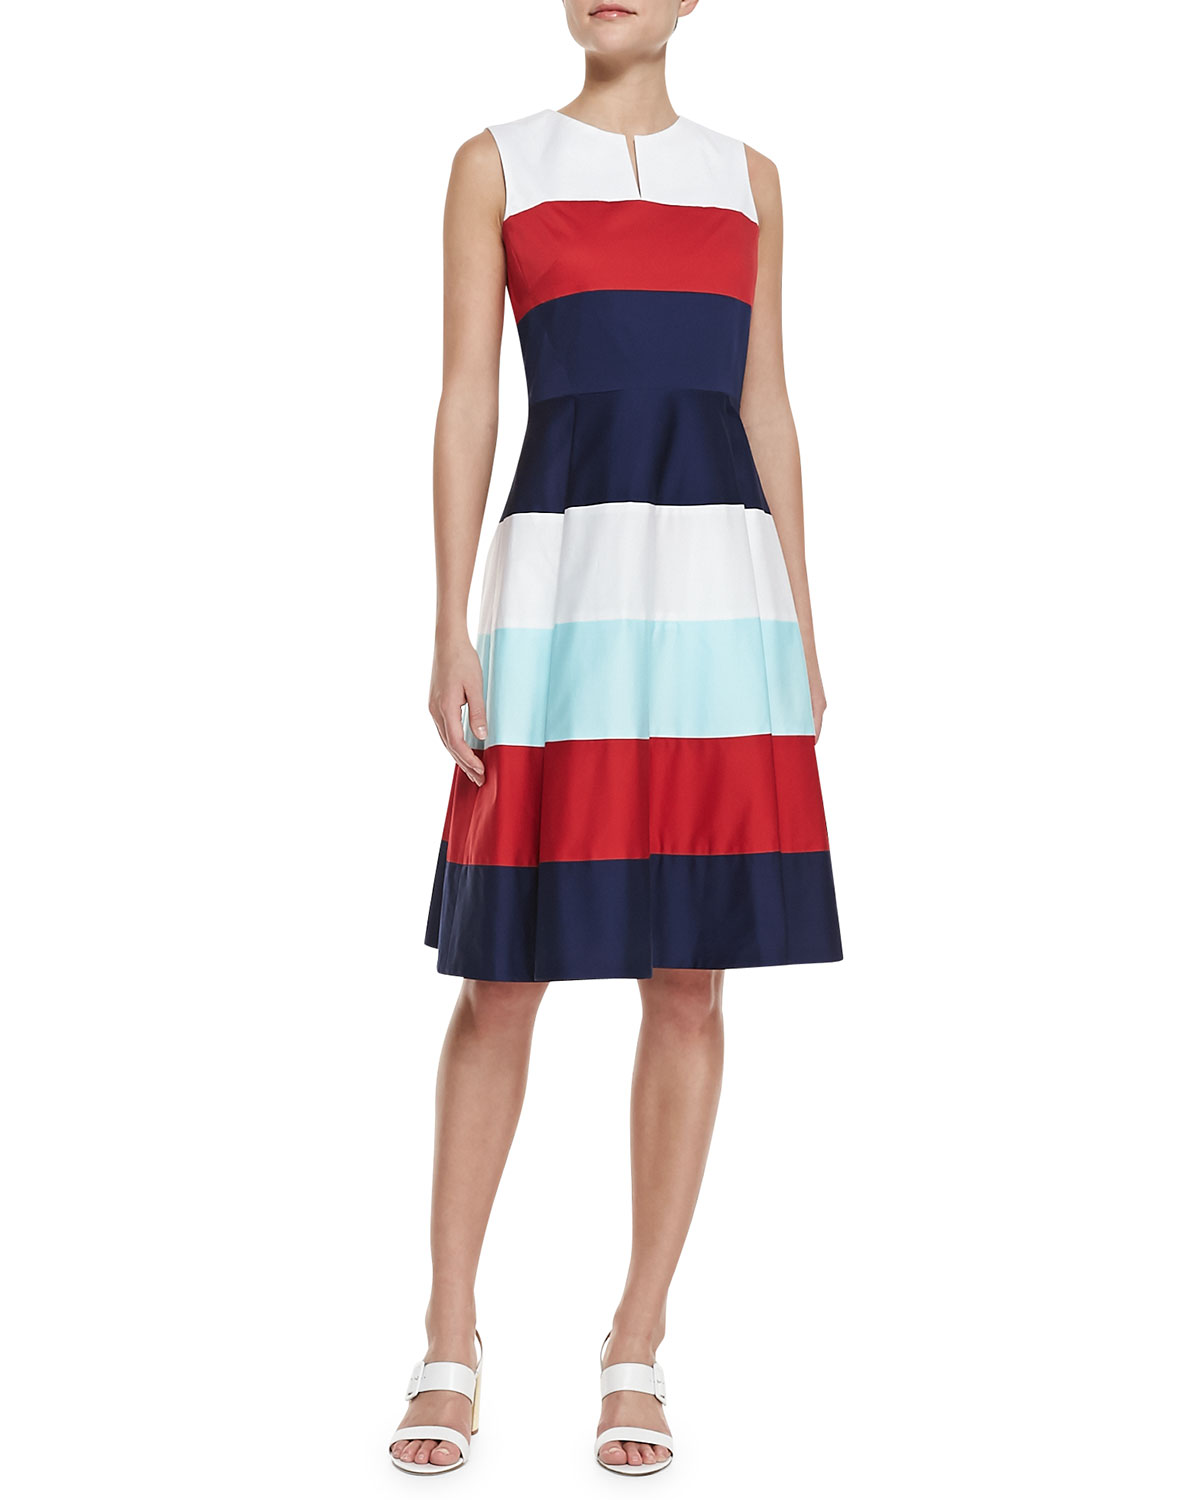 Womens corley colorblock band dress, multicolor   kate spade new york   Multi